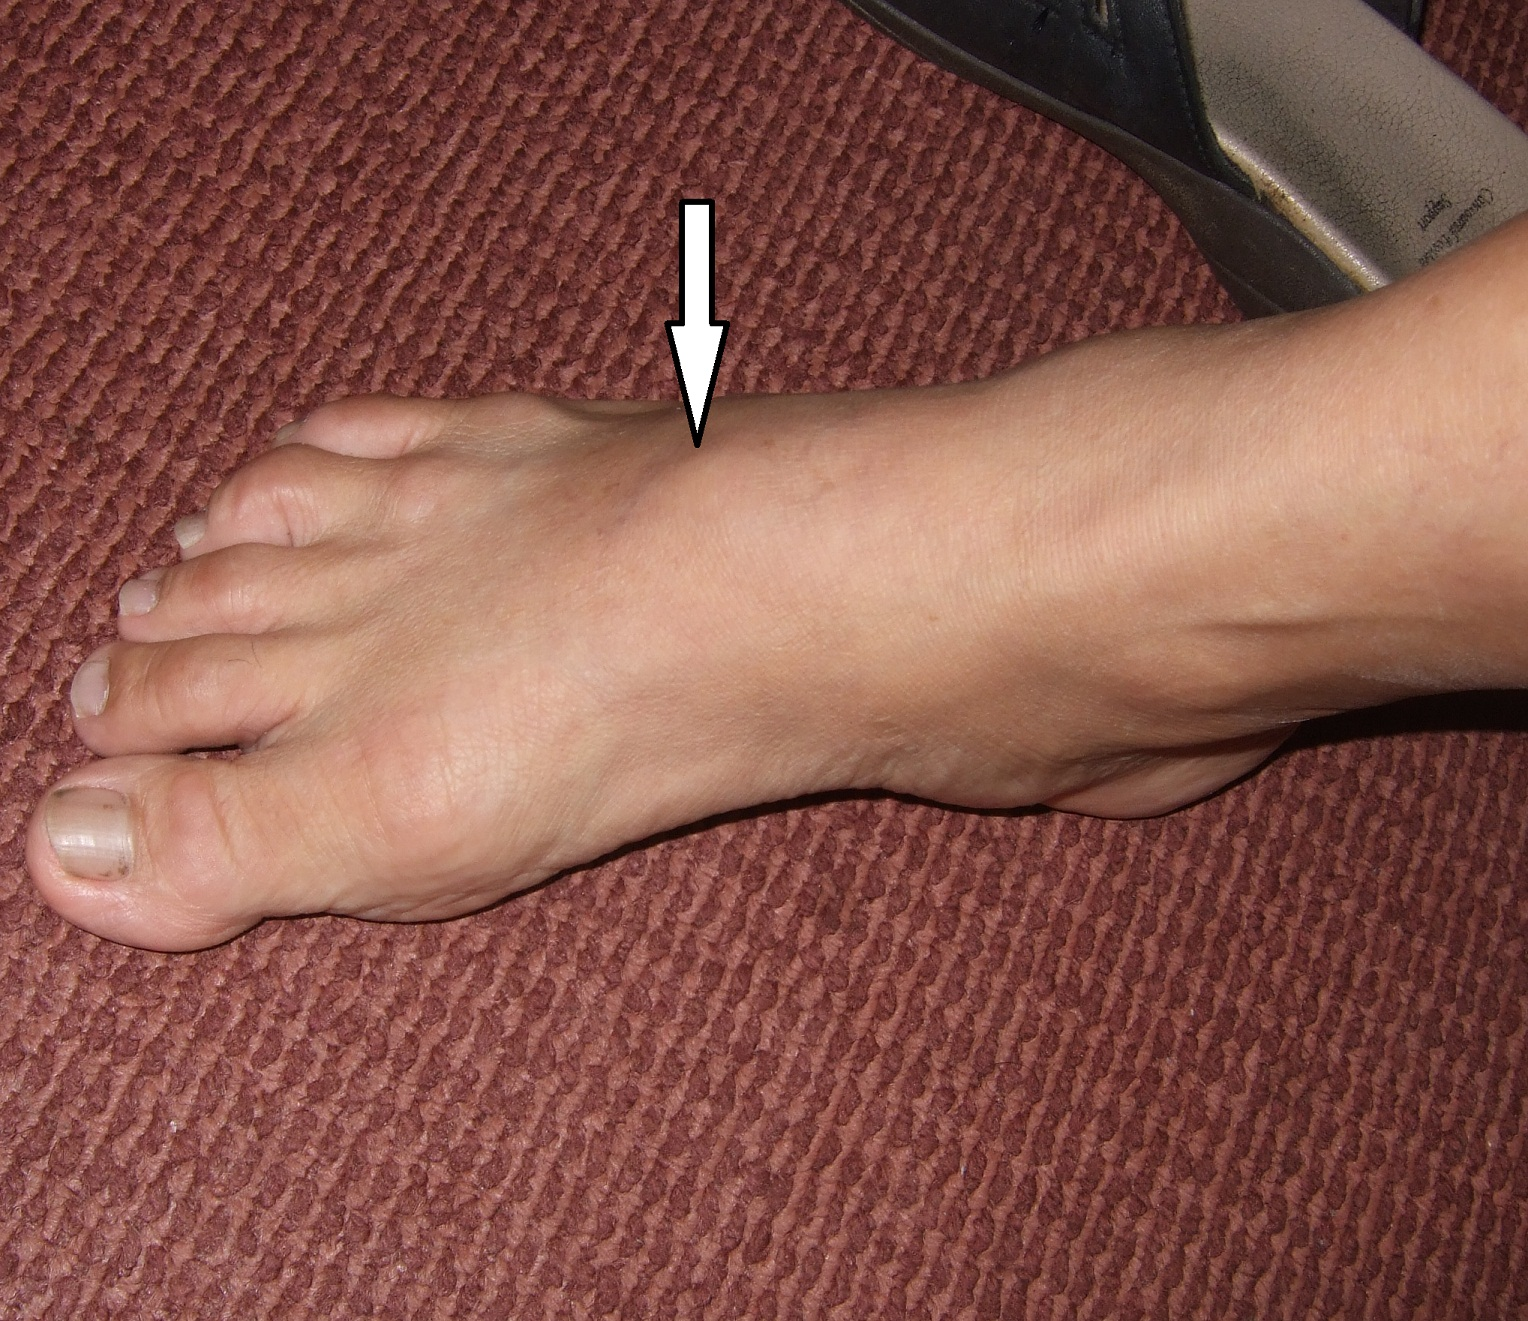 Painful Lump Over The Foot  It Could Be Bony Spurs  Hc -5258